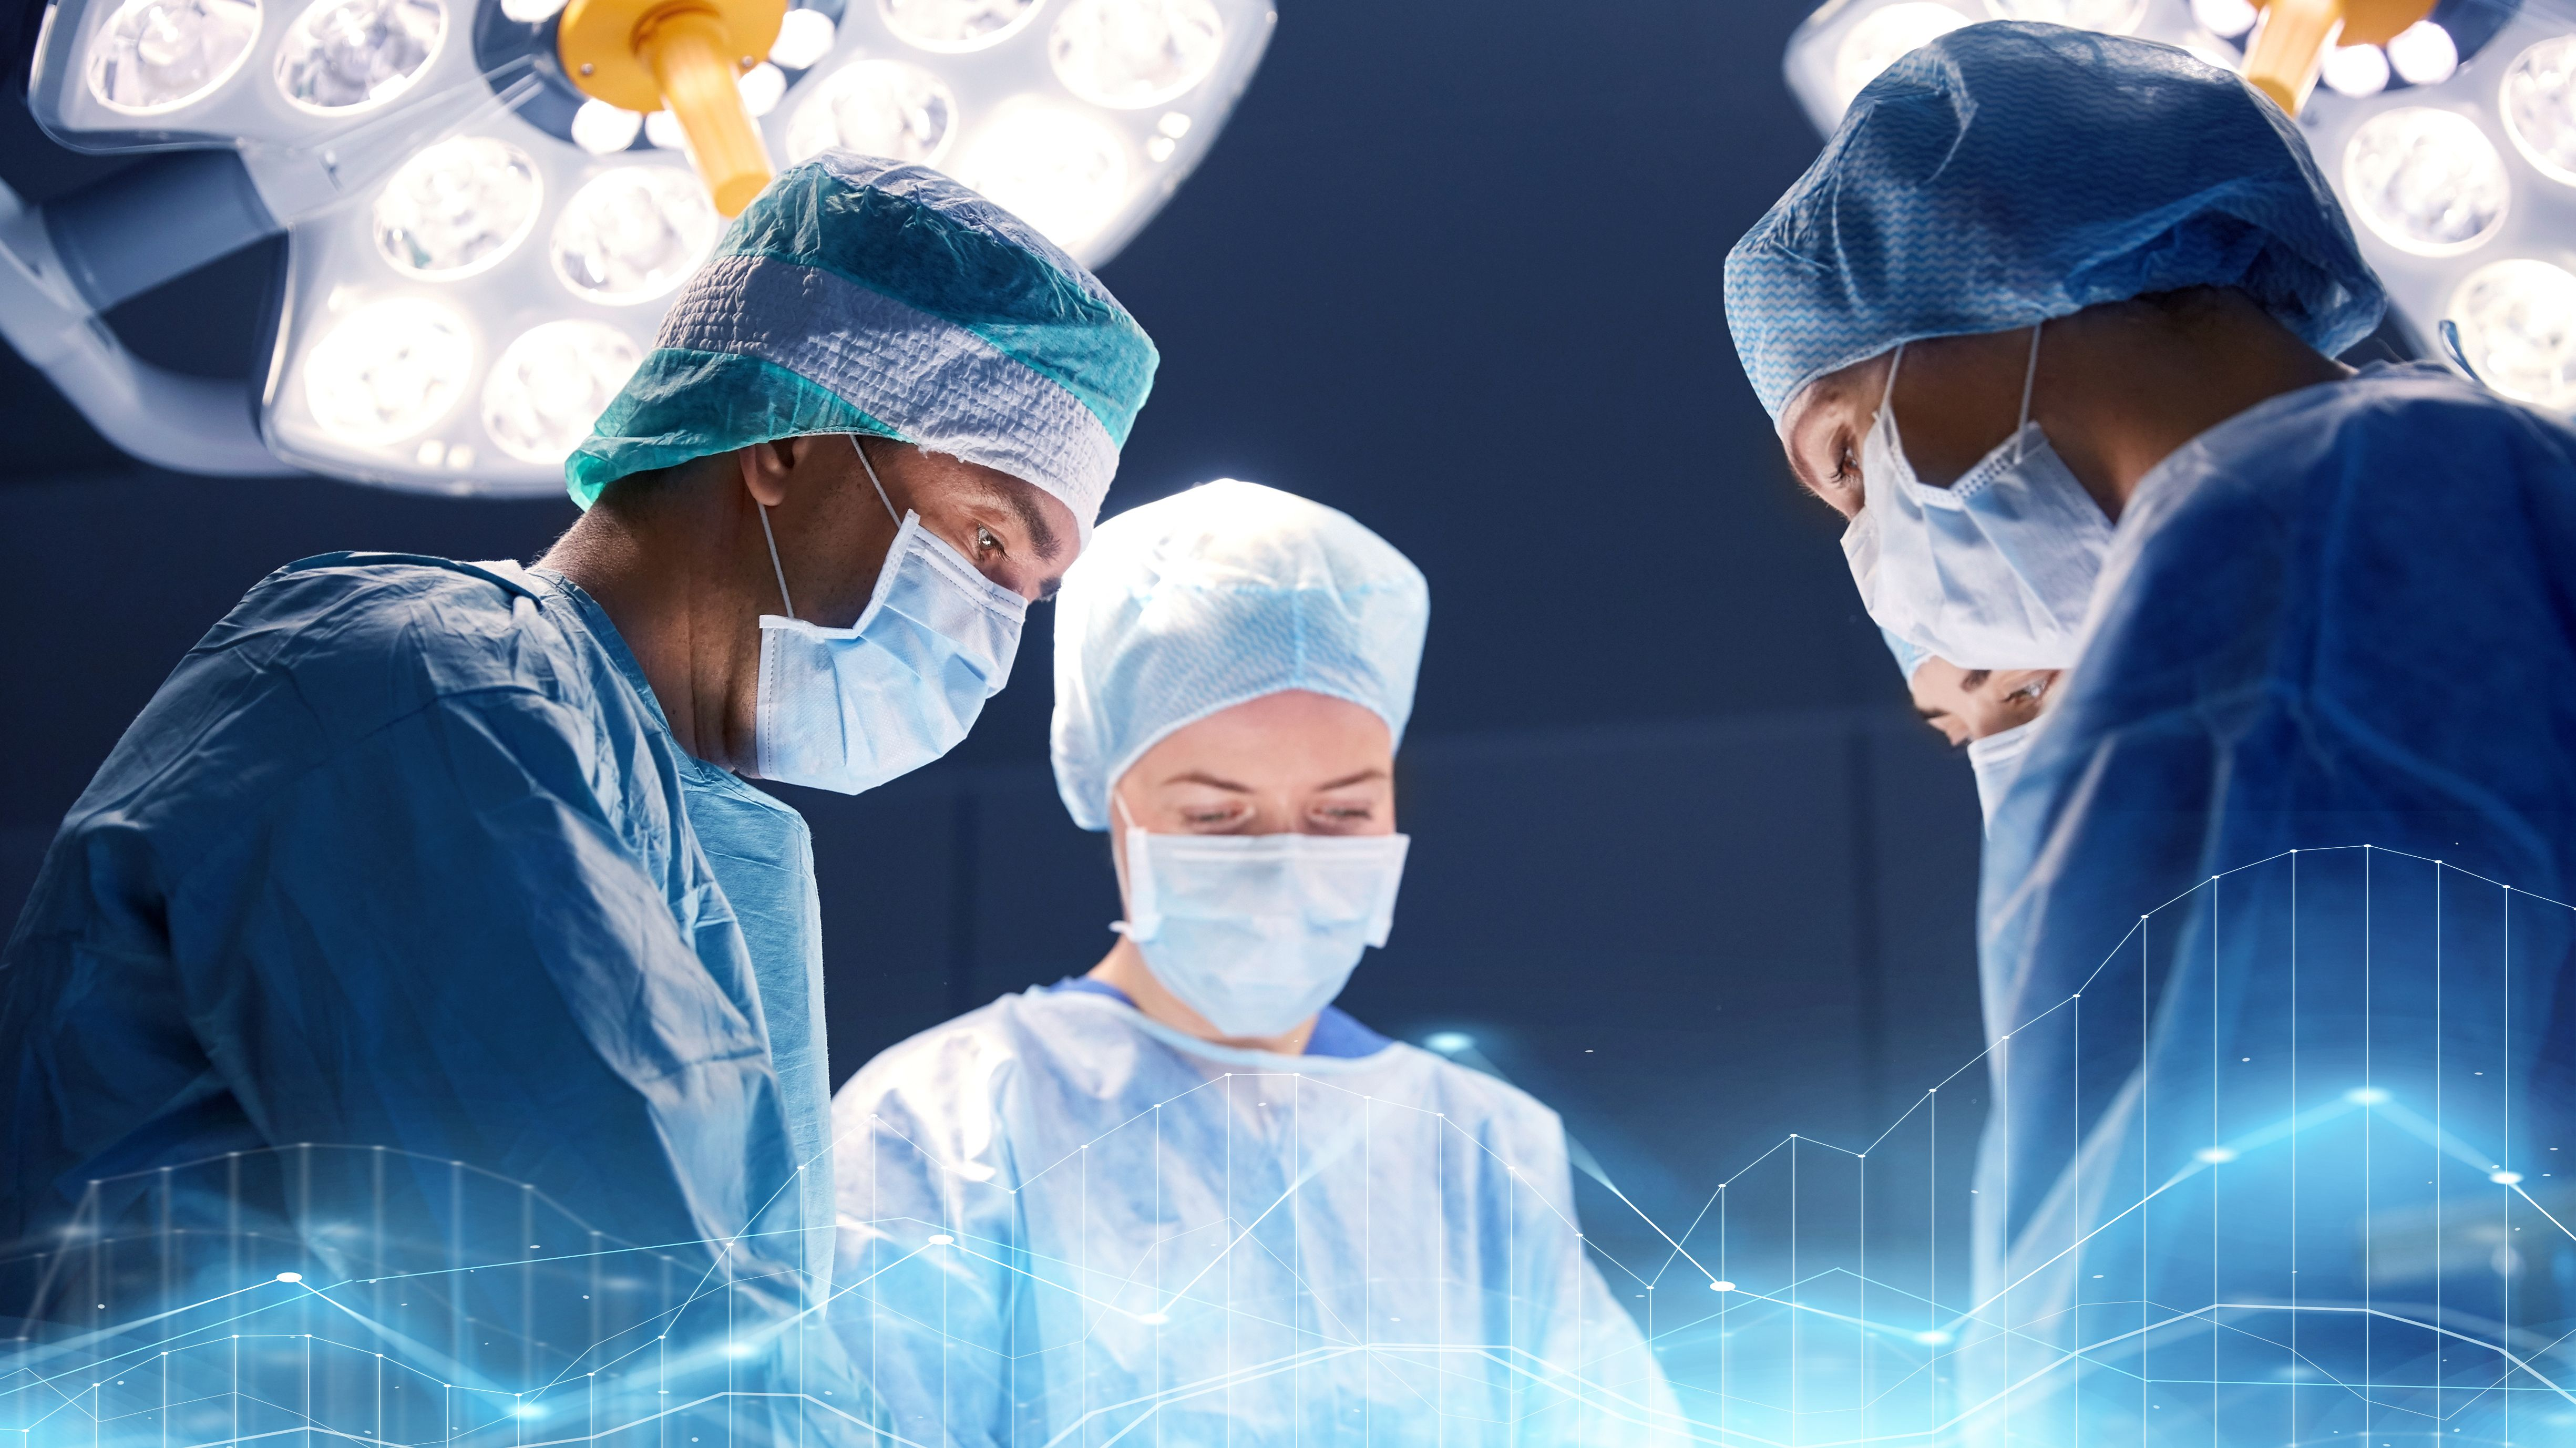 Doctors operating on a person. | Source: Shutterstock